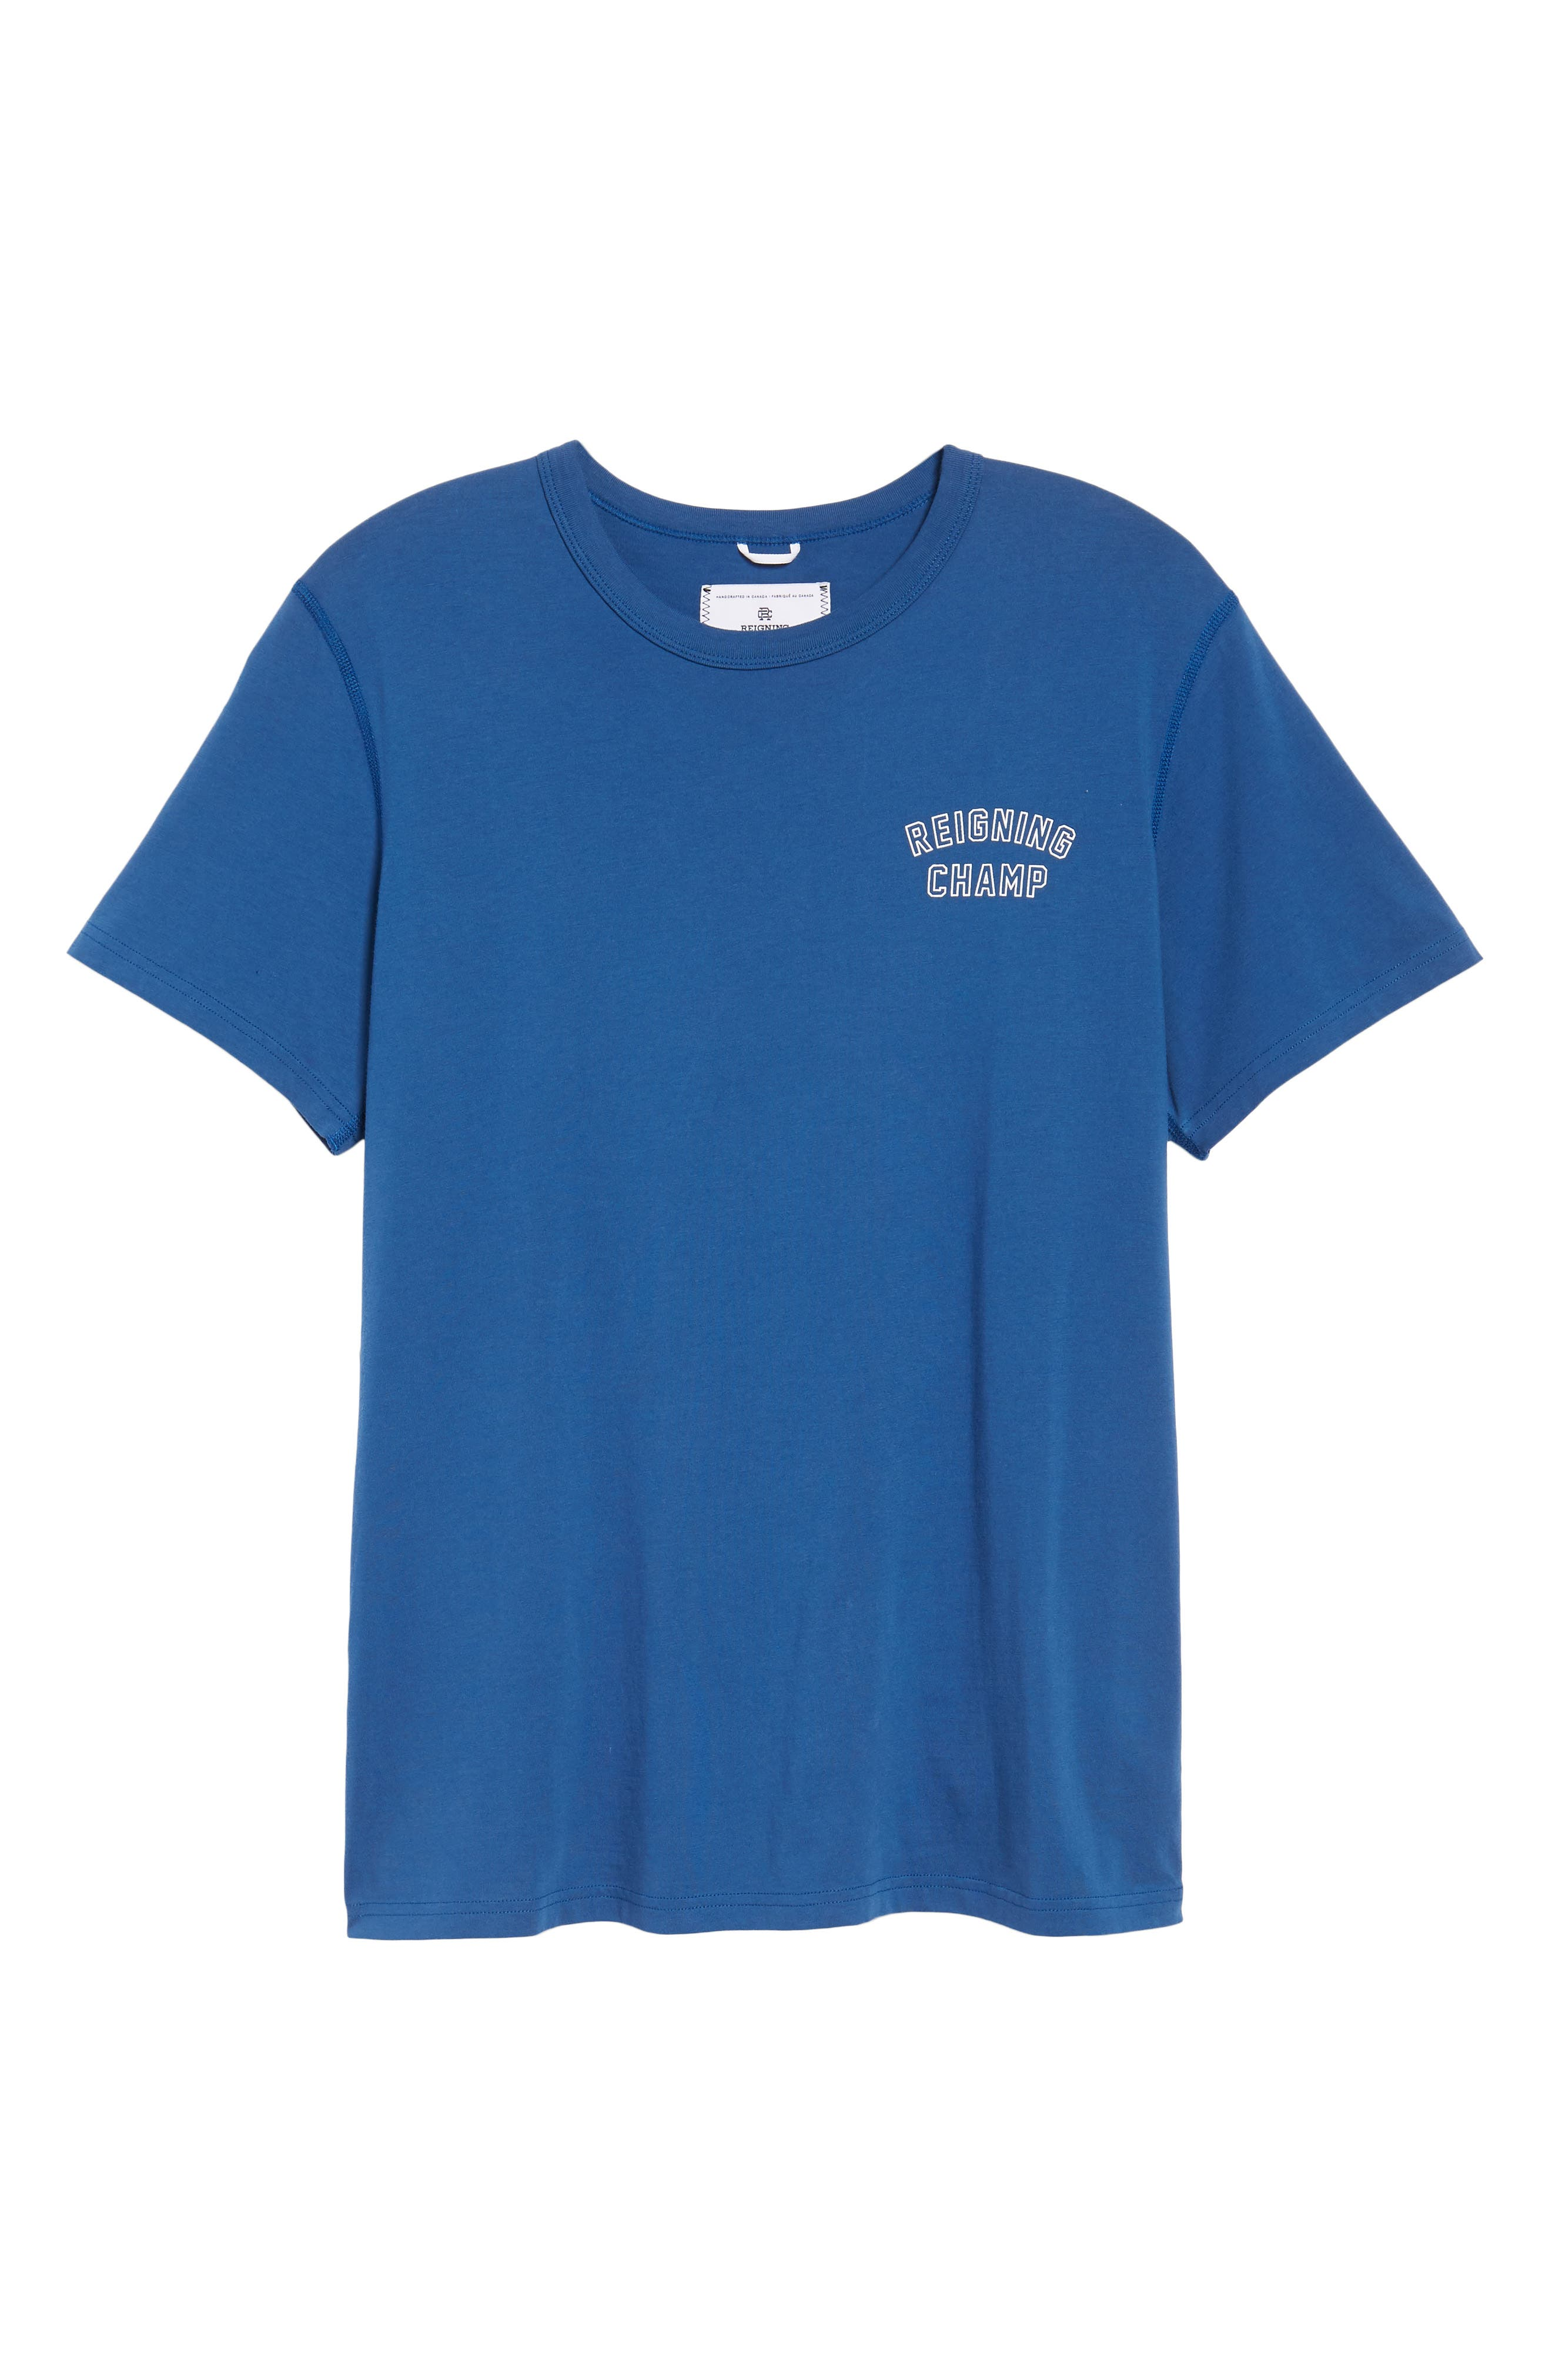 Varsity Logo T-Shirt,                             Alternate thumbnail 6, color,                             Court Blue/ White